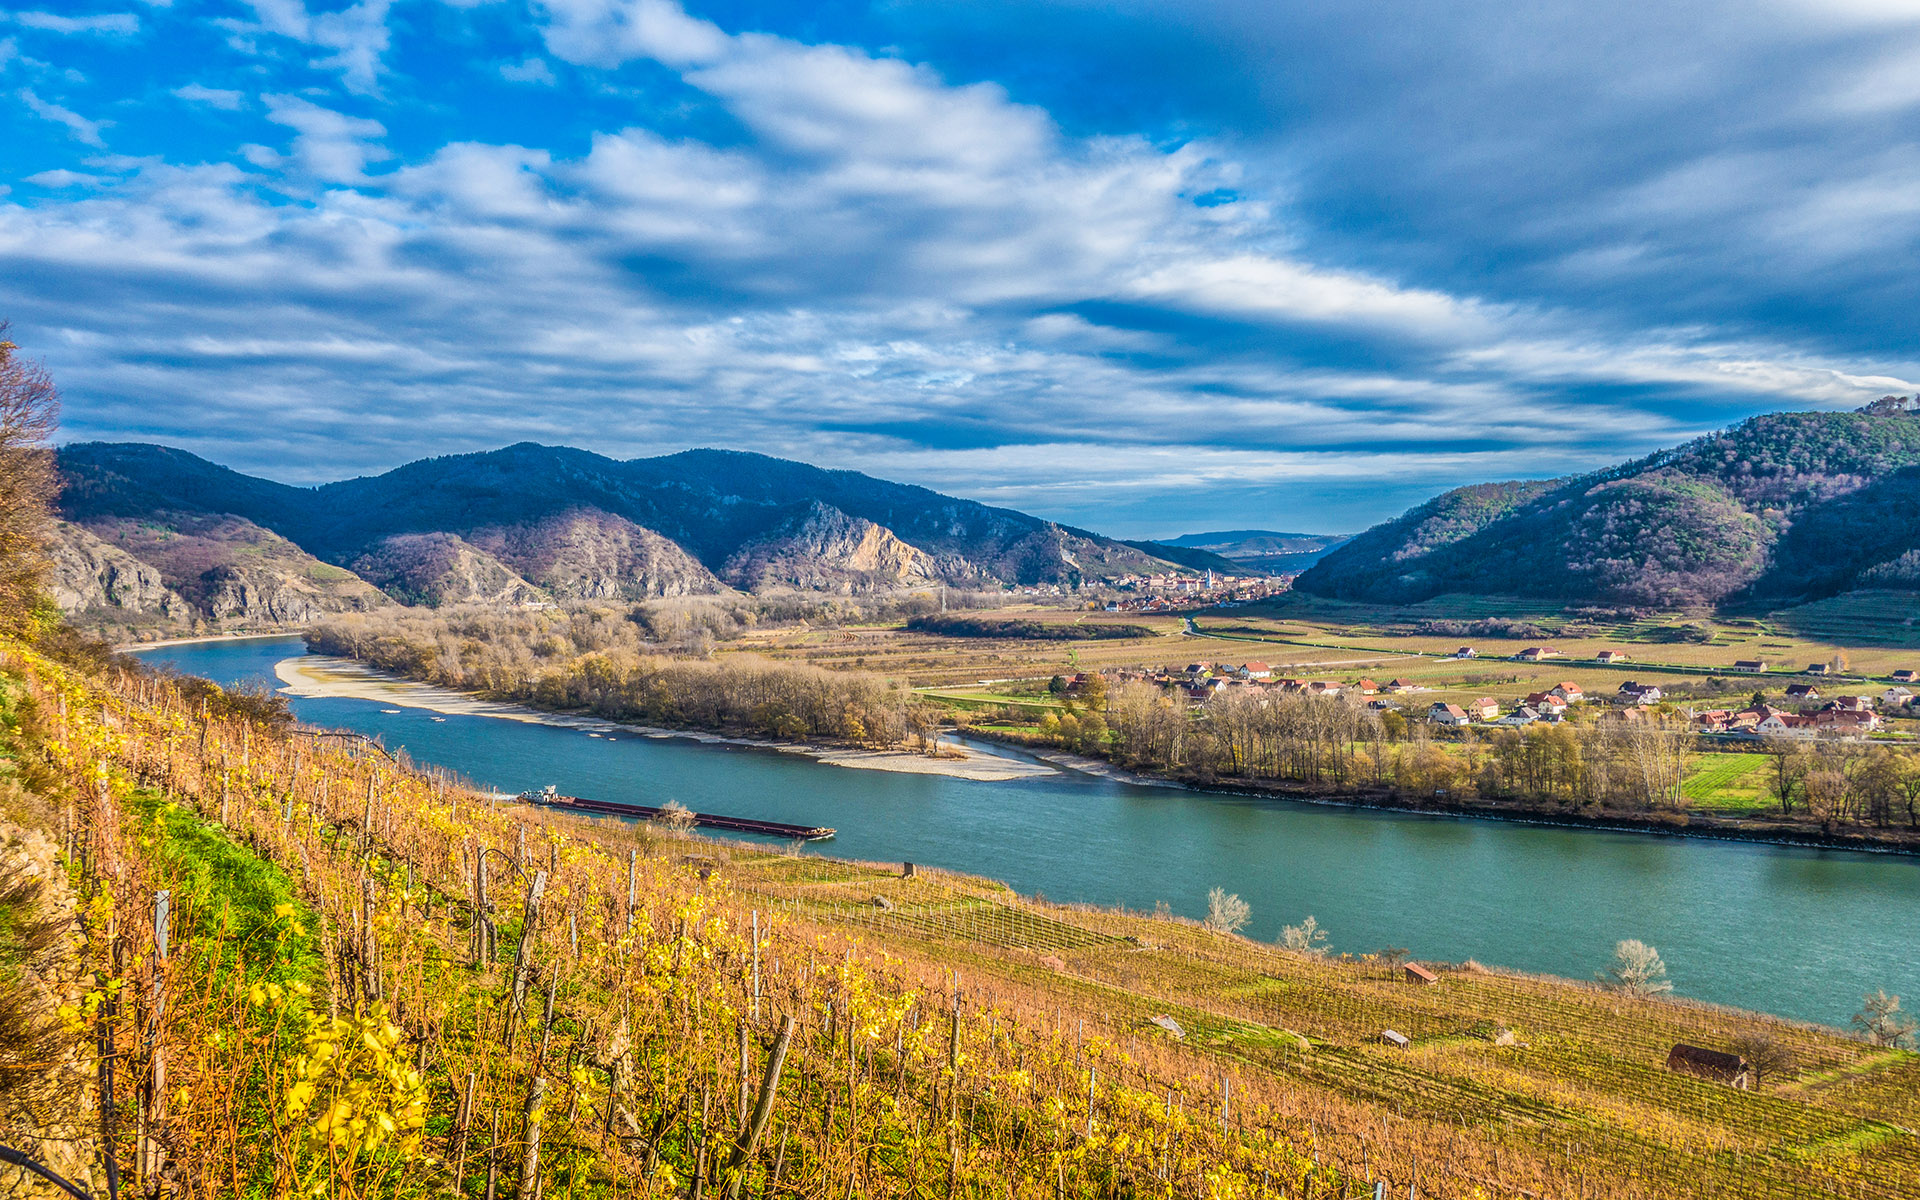 Danube river running through the Wachu Valley